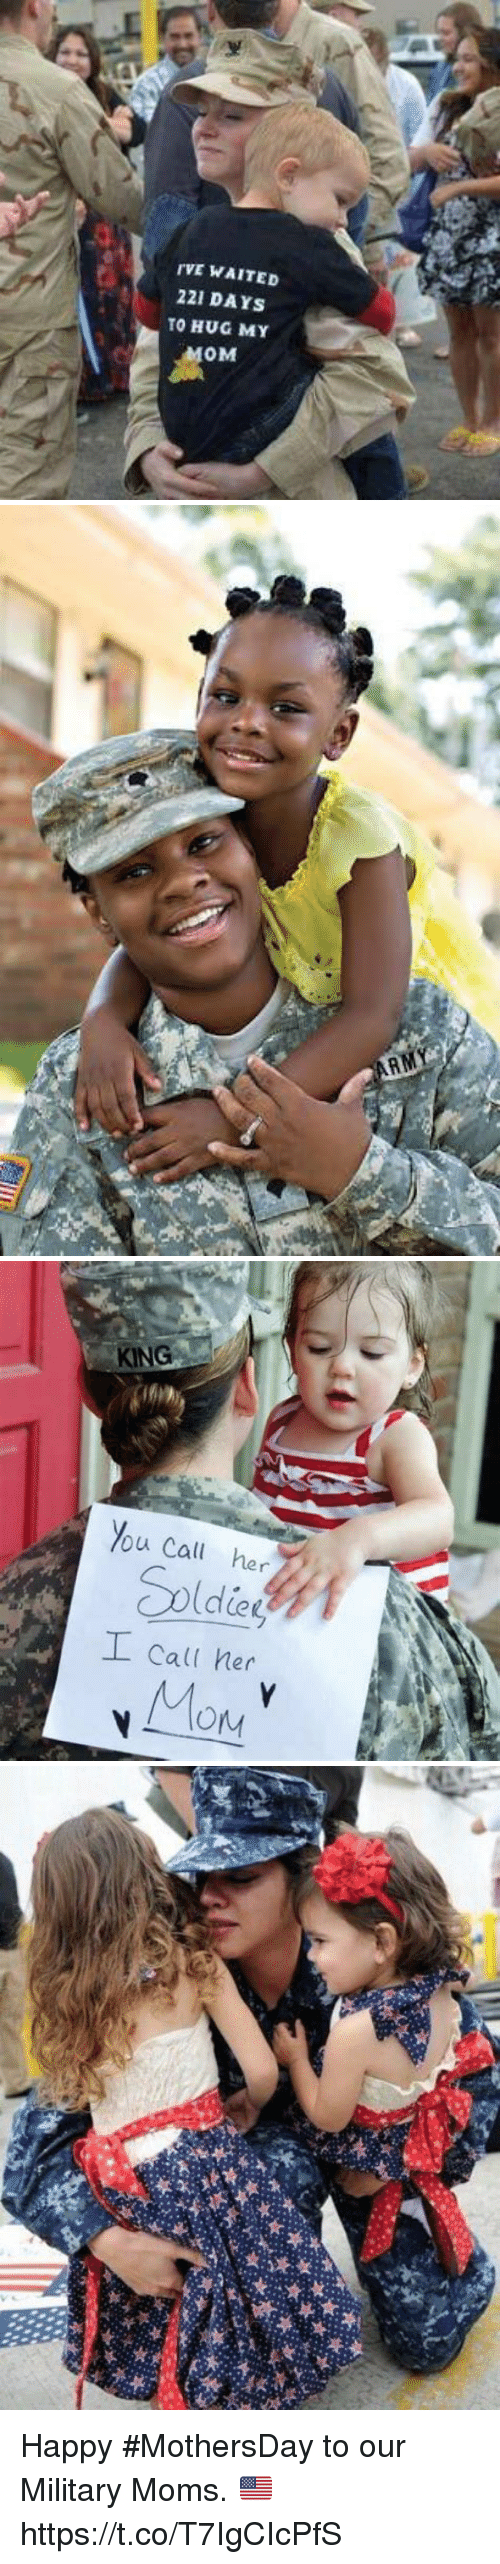 Memes, Moms, and Happy: TVE WAITED  221 DAYS  TO HUG MY  0M   KING  %U Call her  Call her Happy #MothersDay to our Military Moms. 🇺🇸 https://t.co/T7IgCIcPfS